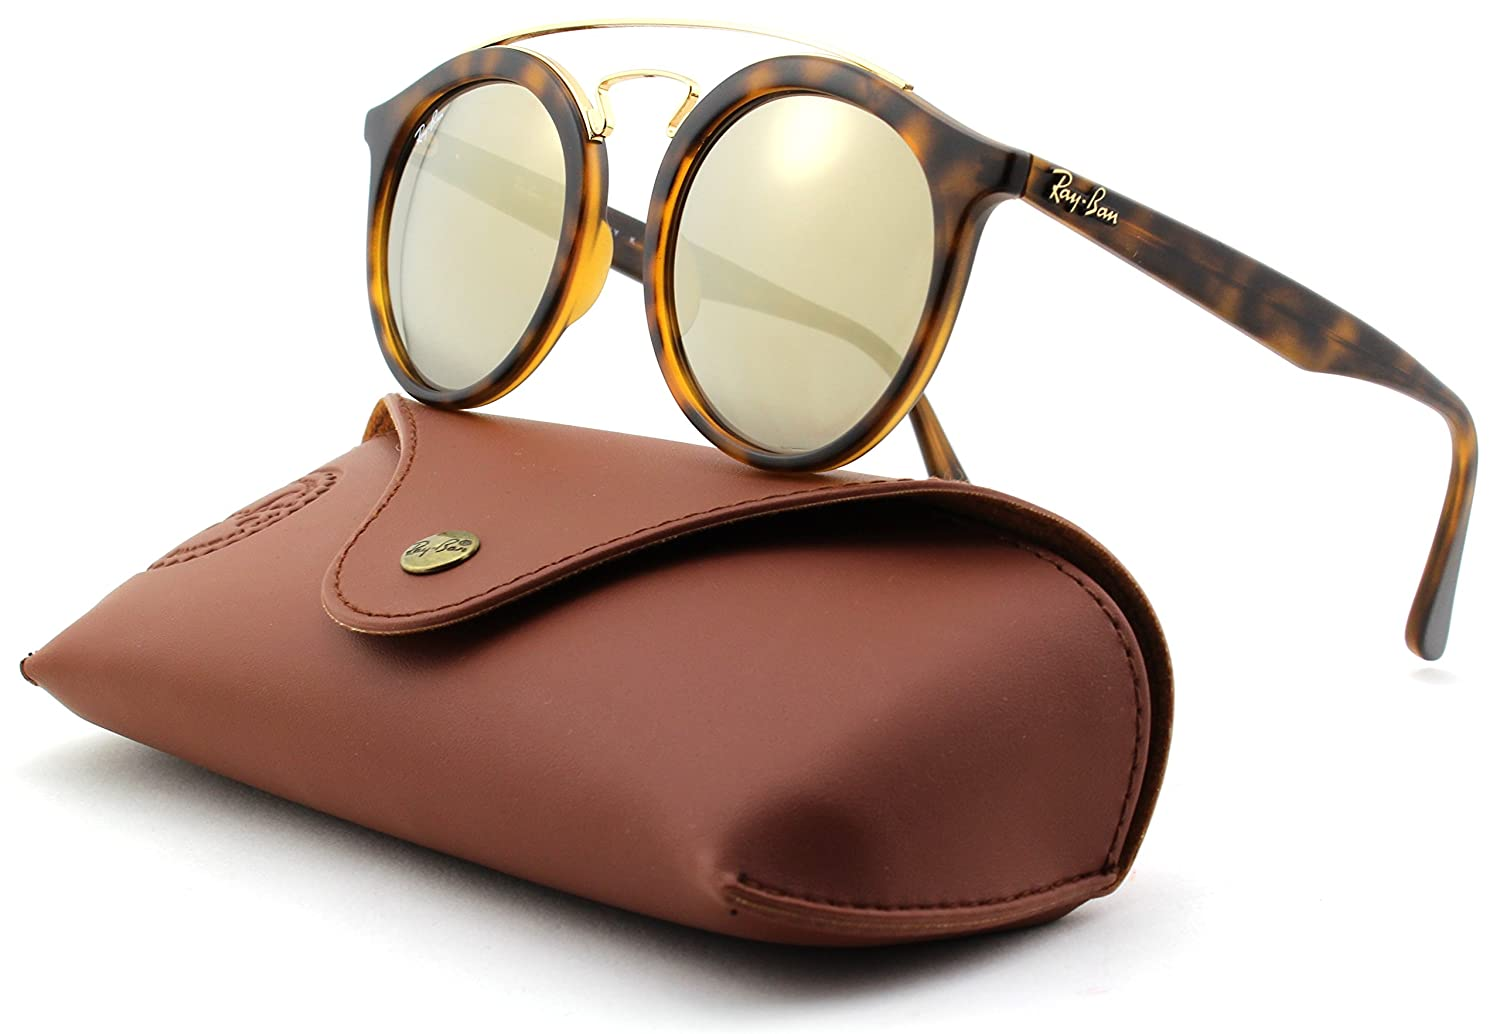 758a0fd698f ... lens e9ef4 888ac coupon amazon ray ban rb4256 gatsby mirror round  sunglasses matte havana frame light brown mirror gold ...